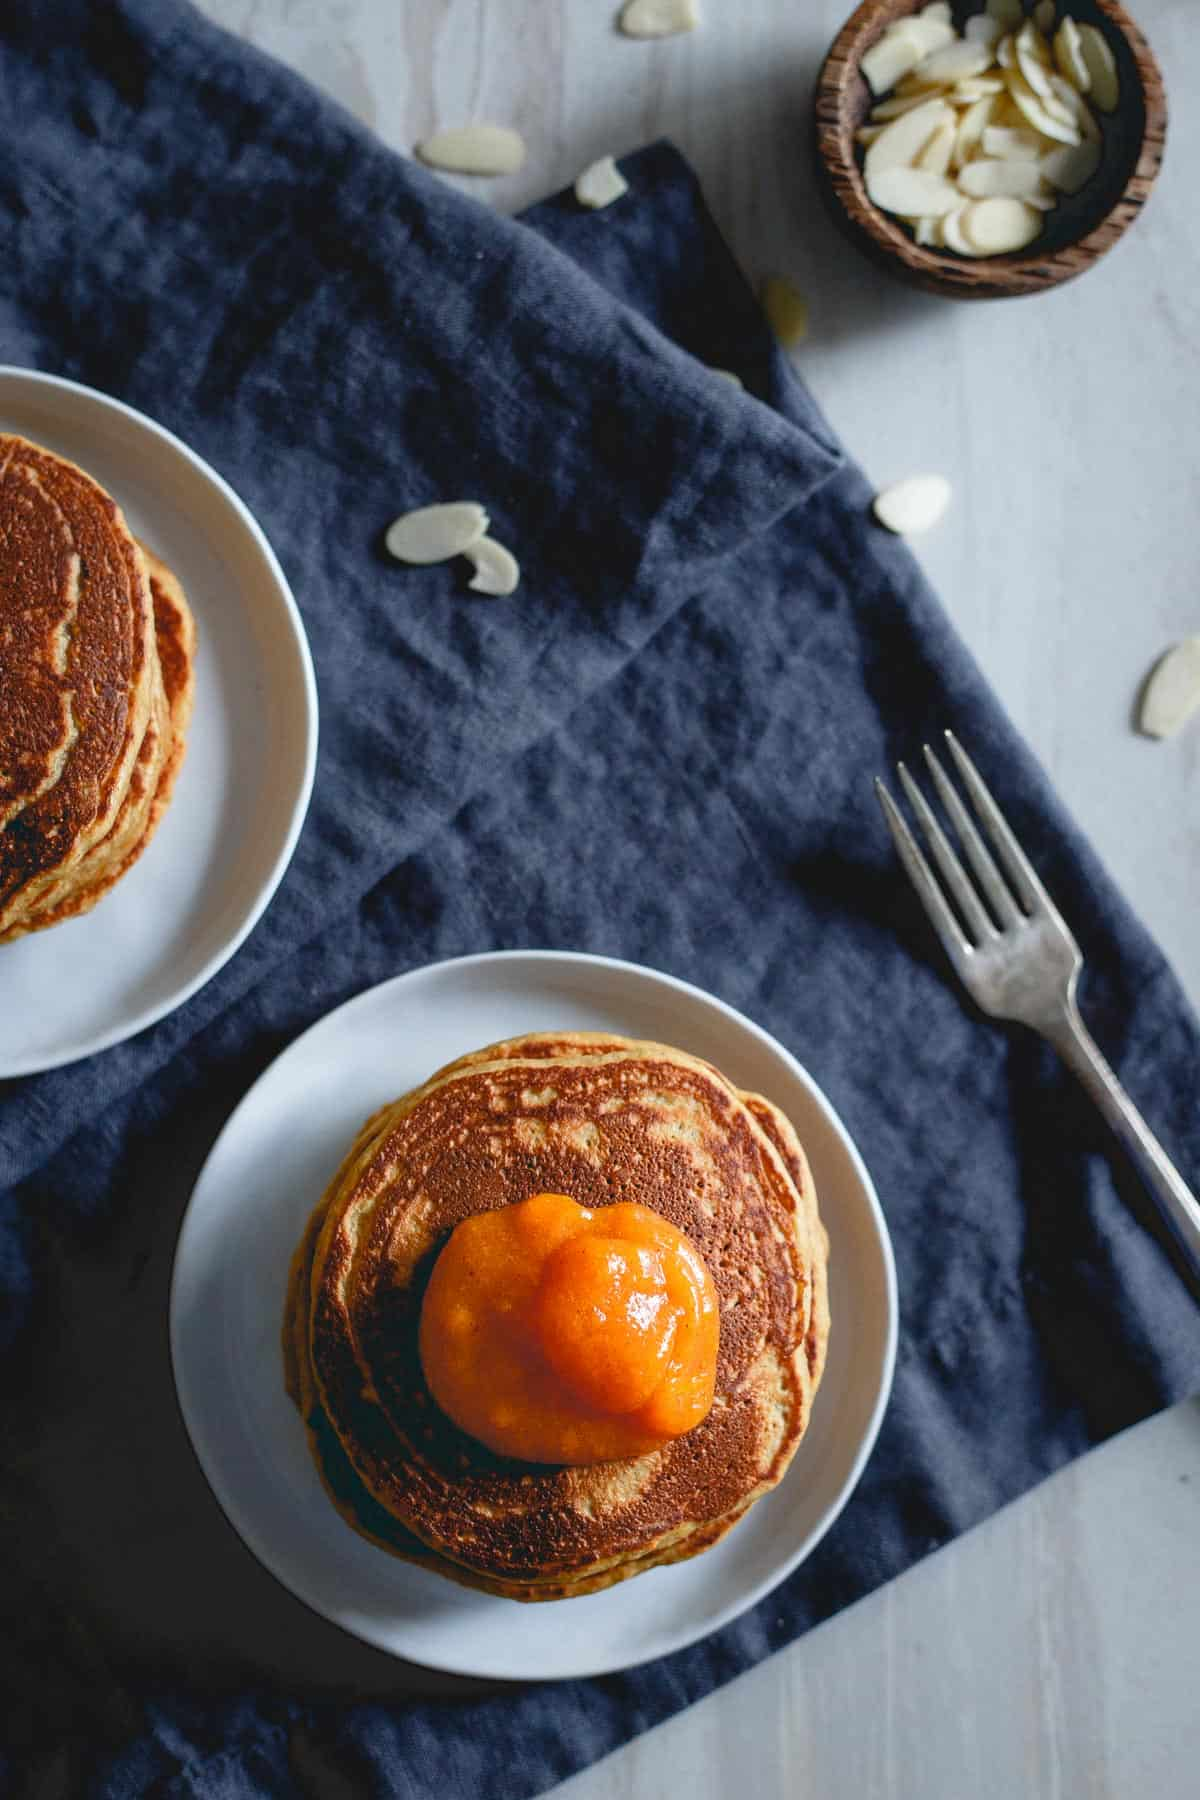 These persimmon pancakes are made with the pulp of the sweet persimmon fruit and full of almond flavor. They're a delicious winter breakfast!